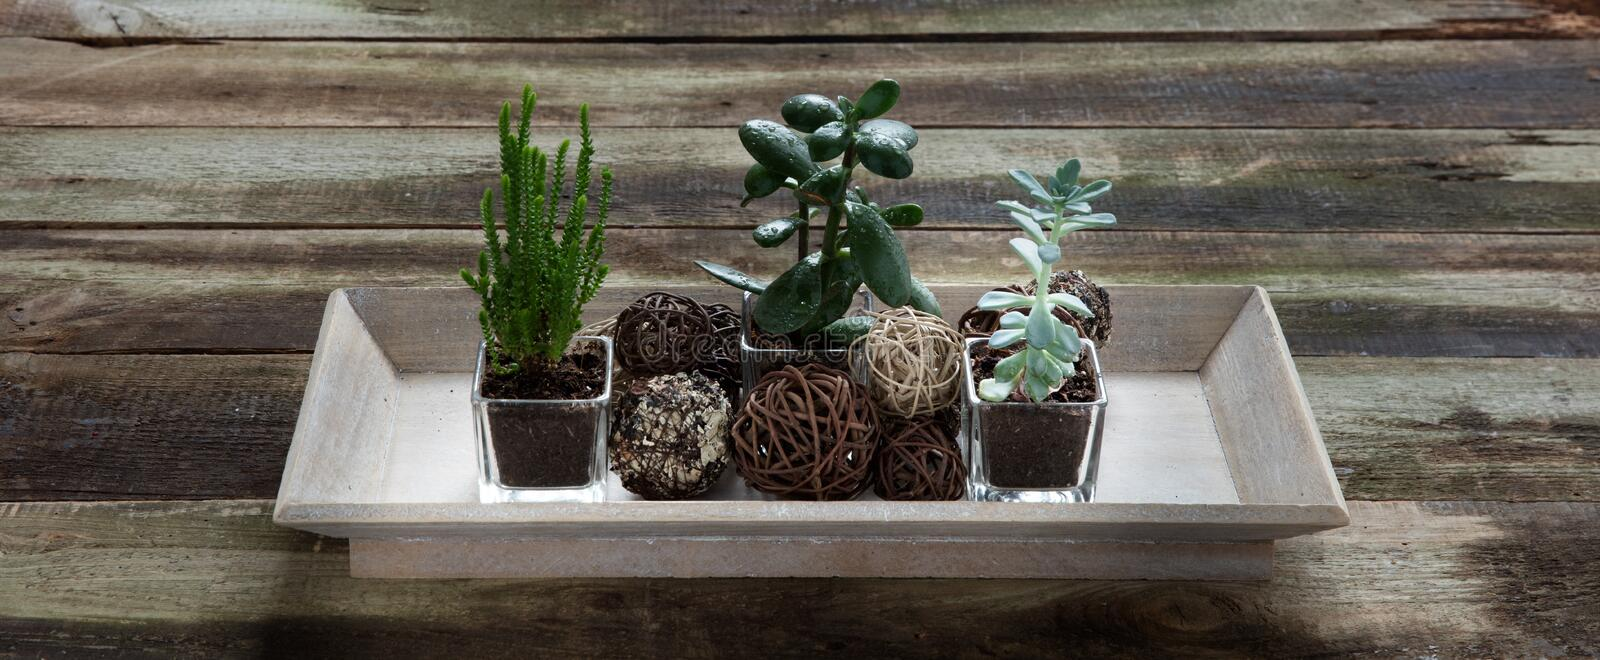 Decorative succulent plants in wooden tray on rustic table, banner. Decorative succulent plants in wooden tray on rustic table for indoor evergreen presentation royalty free stock images